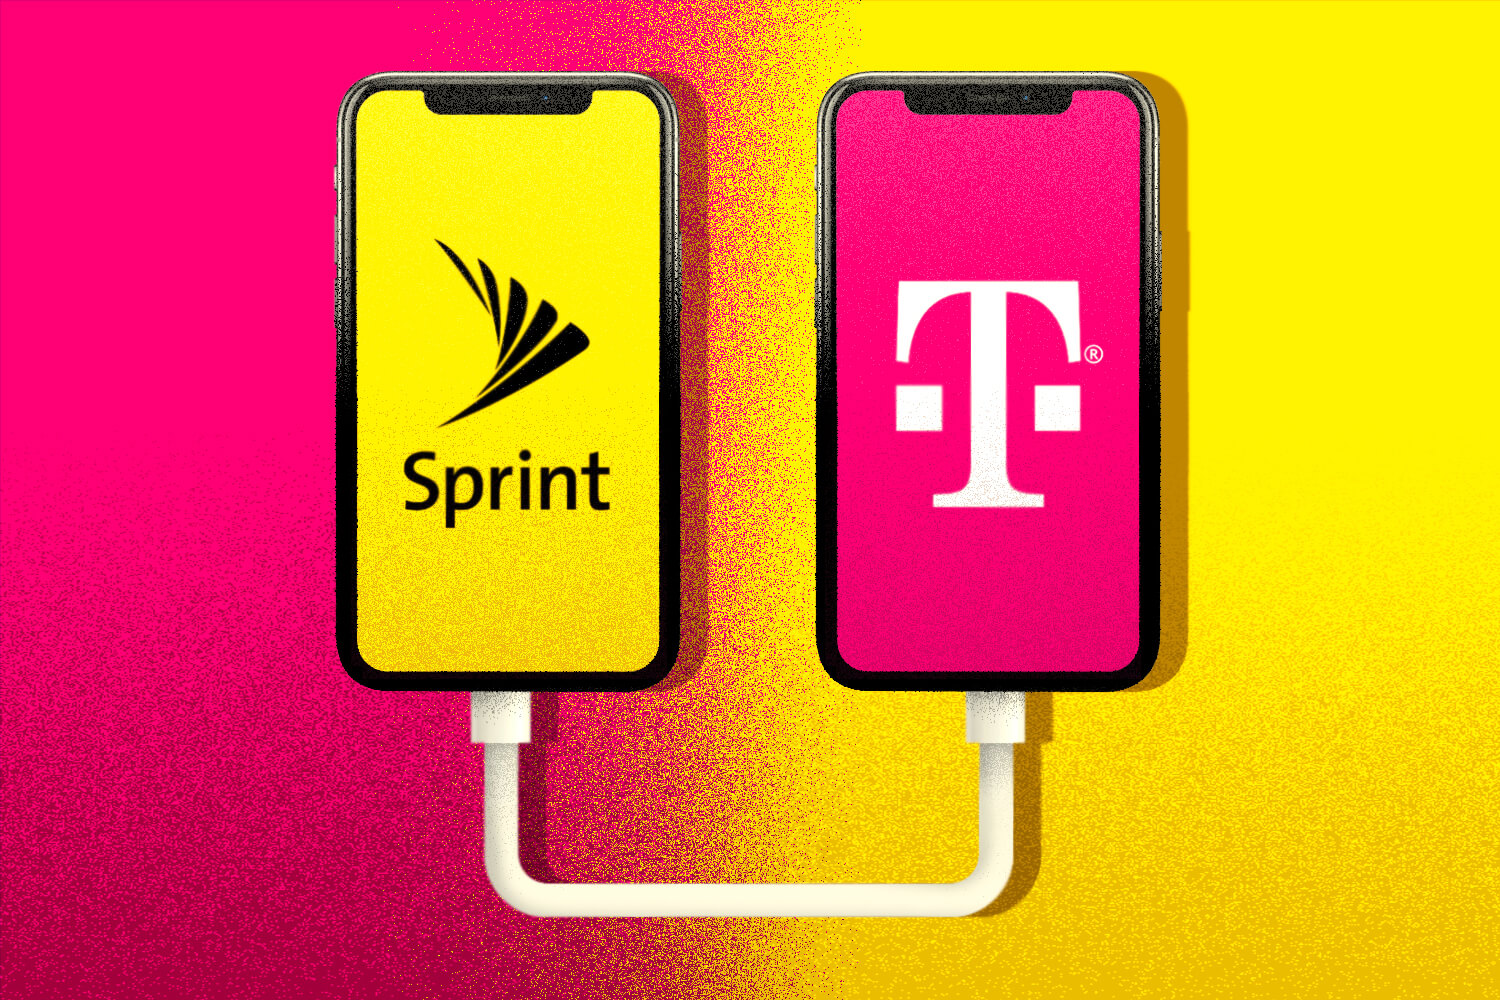 Once combined, the country's third and fourth largest wireless providers plan to be called T-Mobile and serve over 90 million U.S. customers Francis Scialabba